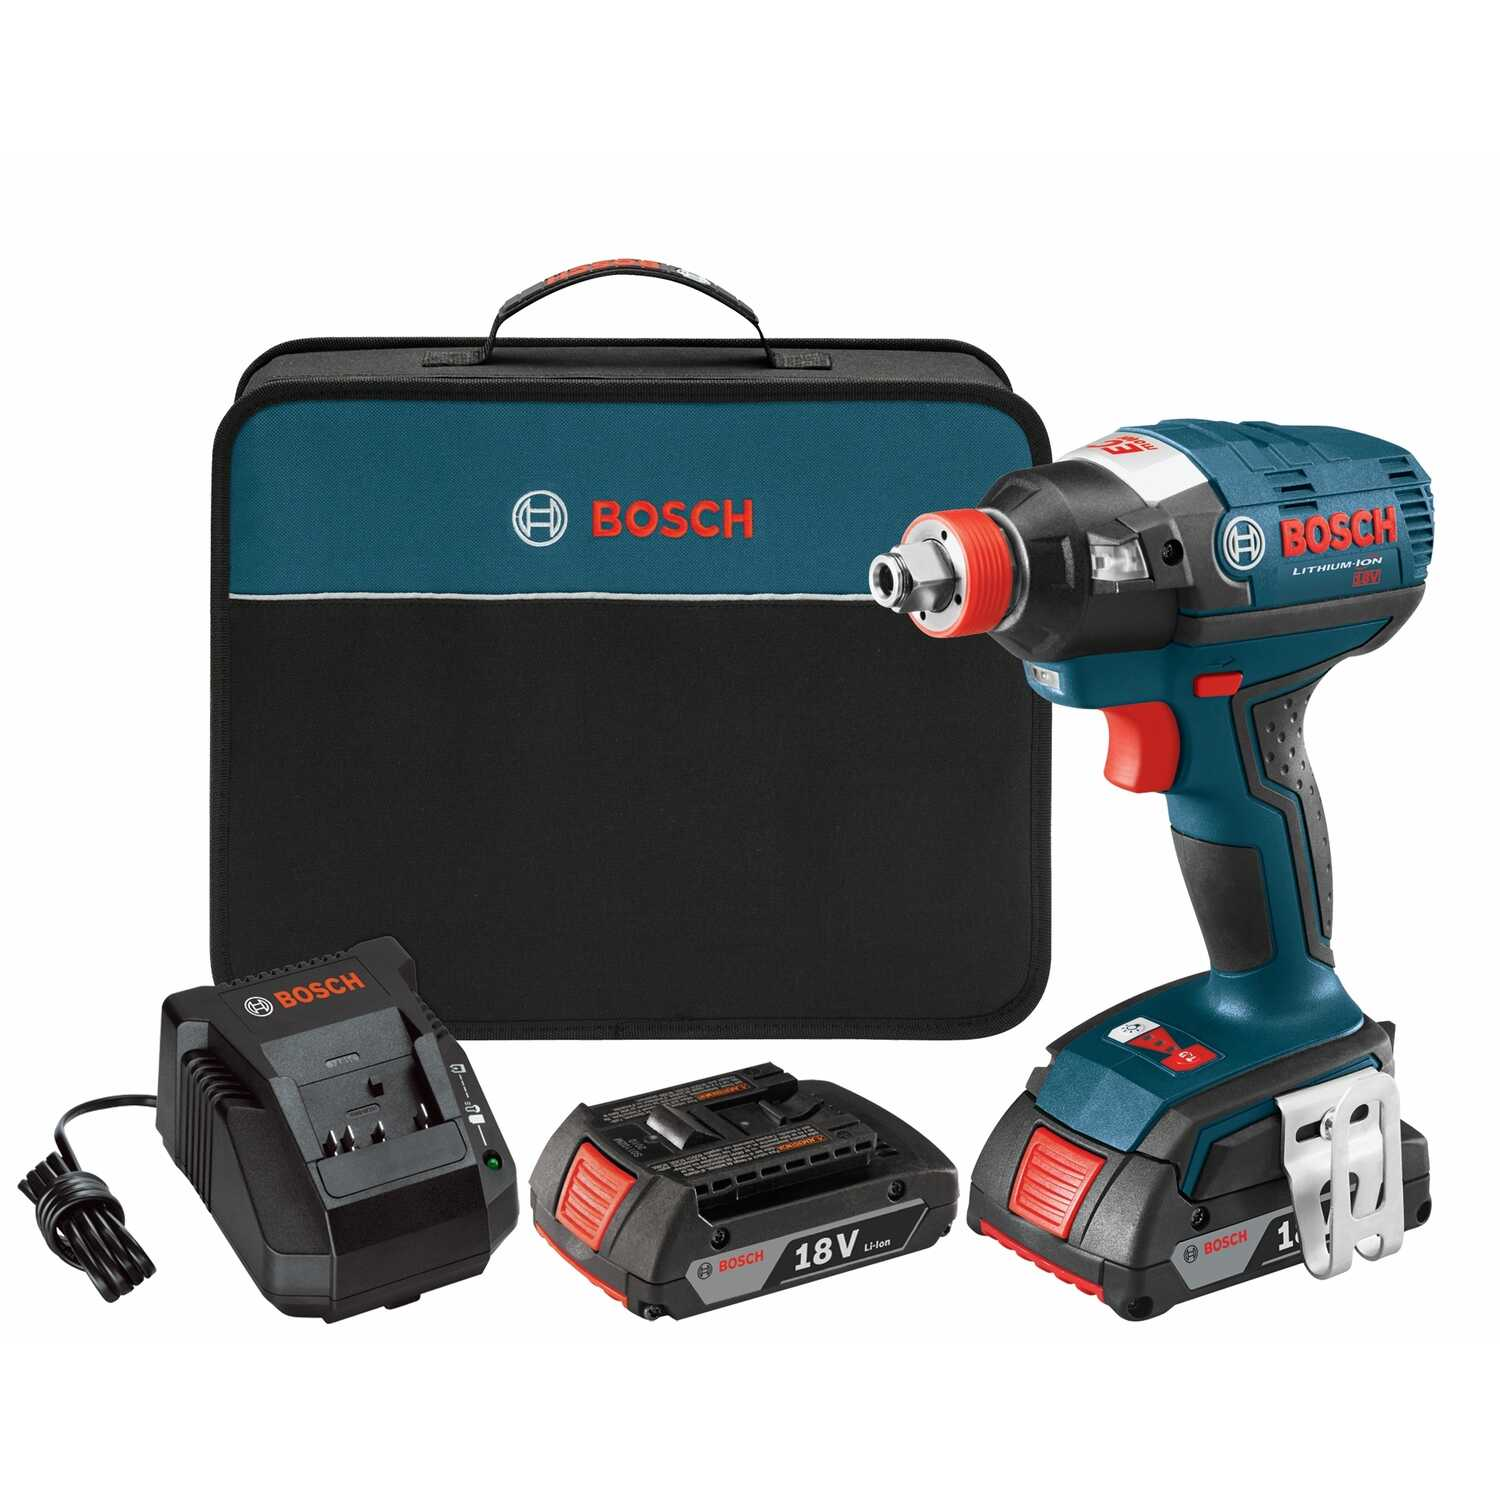 Bosch  18 volt 1/4 in. Hex  Cordless  Impact Driver  Kit 2800 ipm 1650 in-lb 3  1300 rpm 1/2 in.